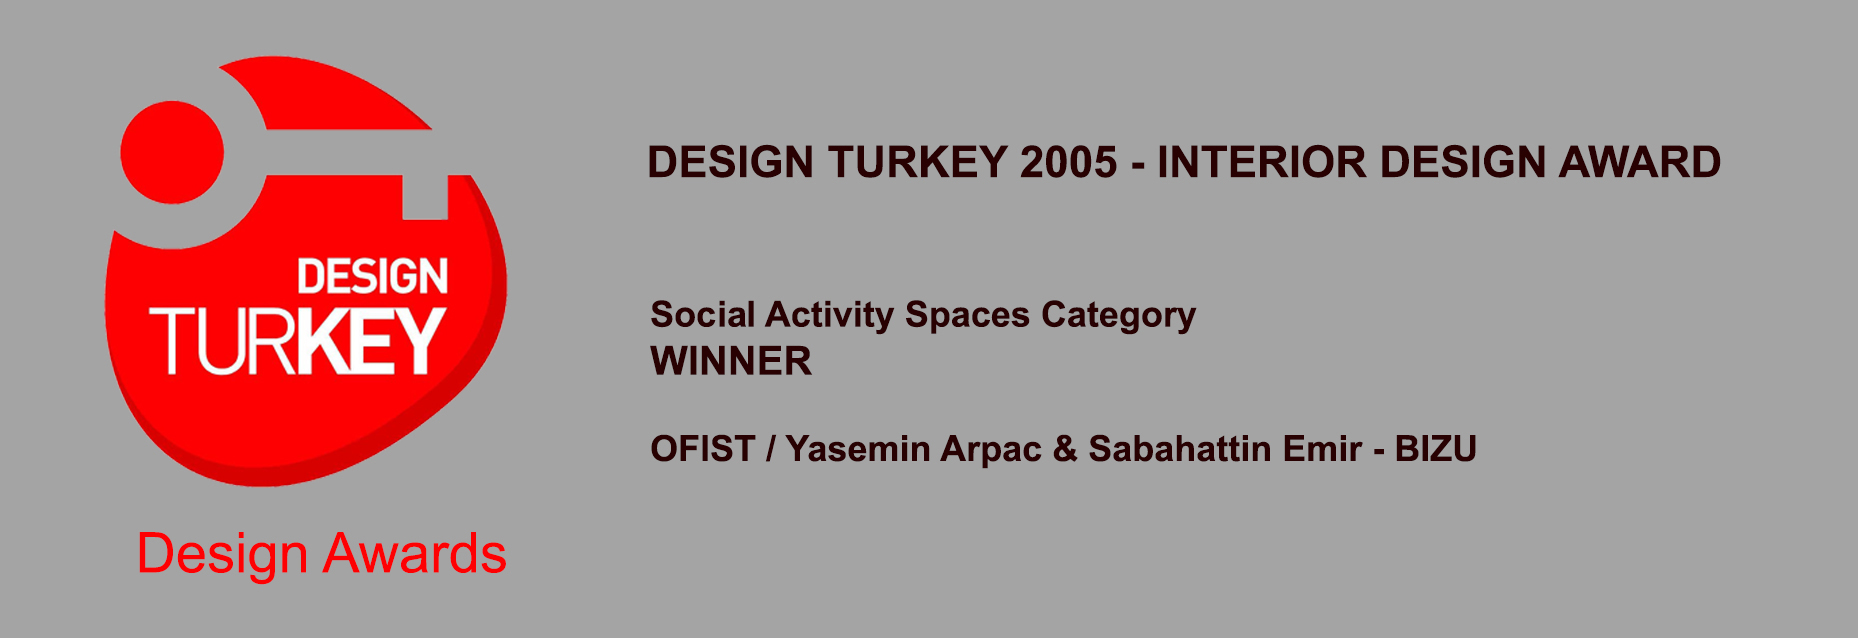 design turkey 1.jpg